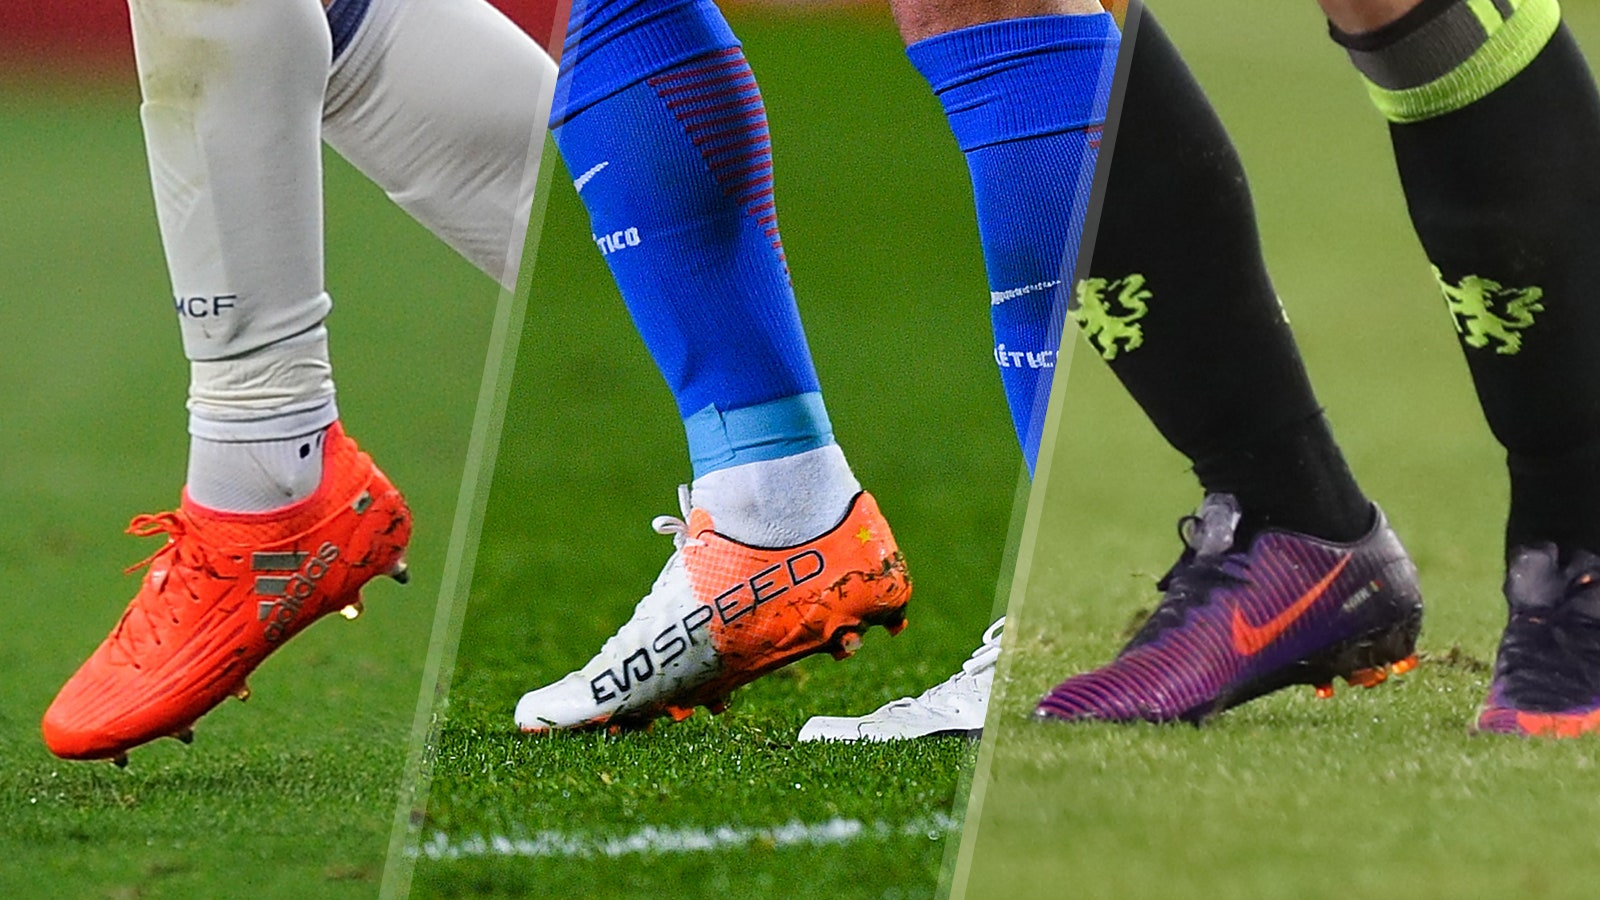 55a132dcce5c11 The 10 most popular boots worn by pro soccer players